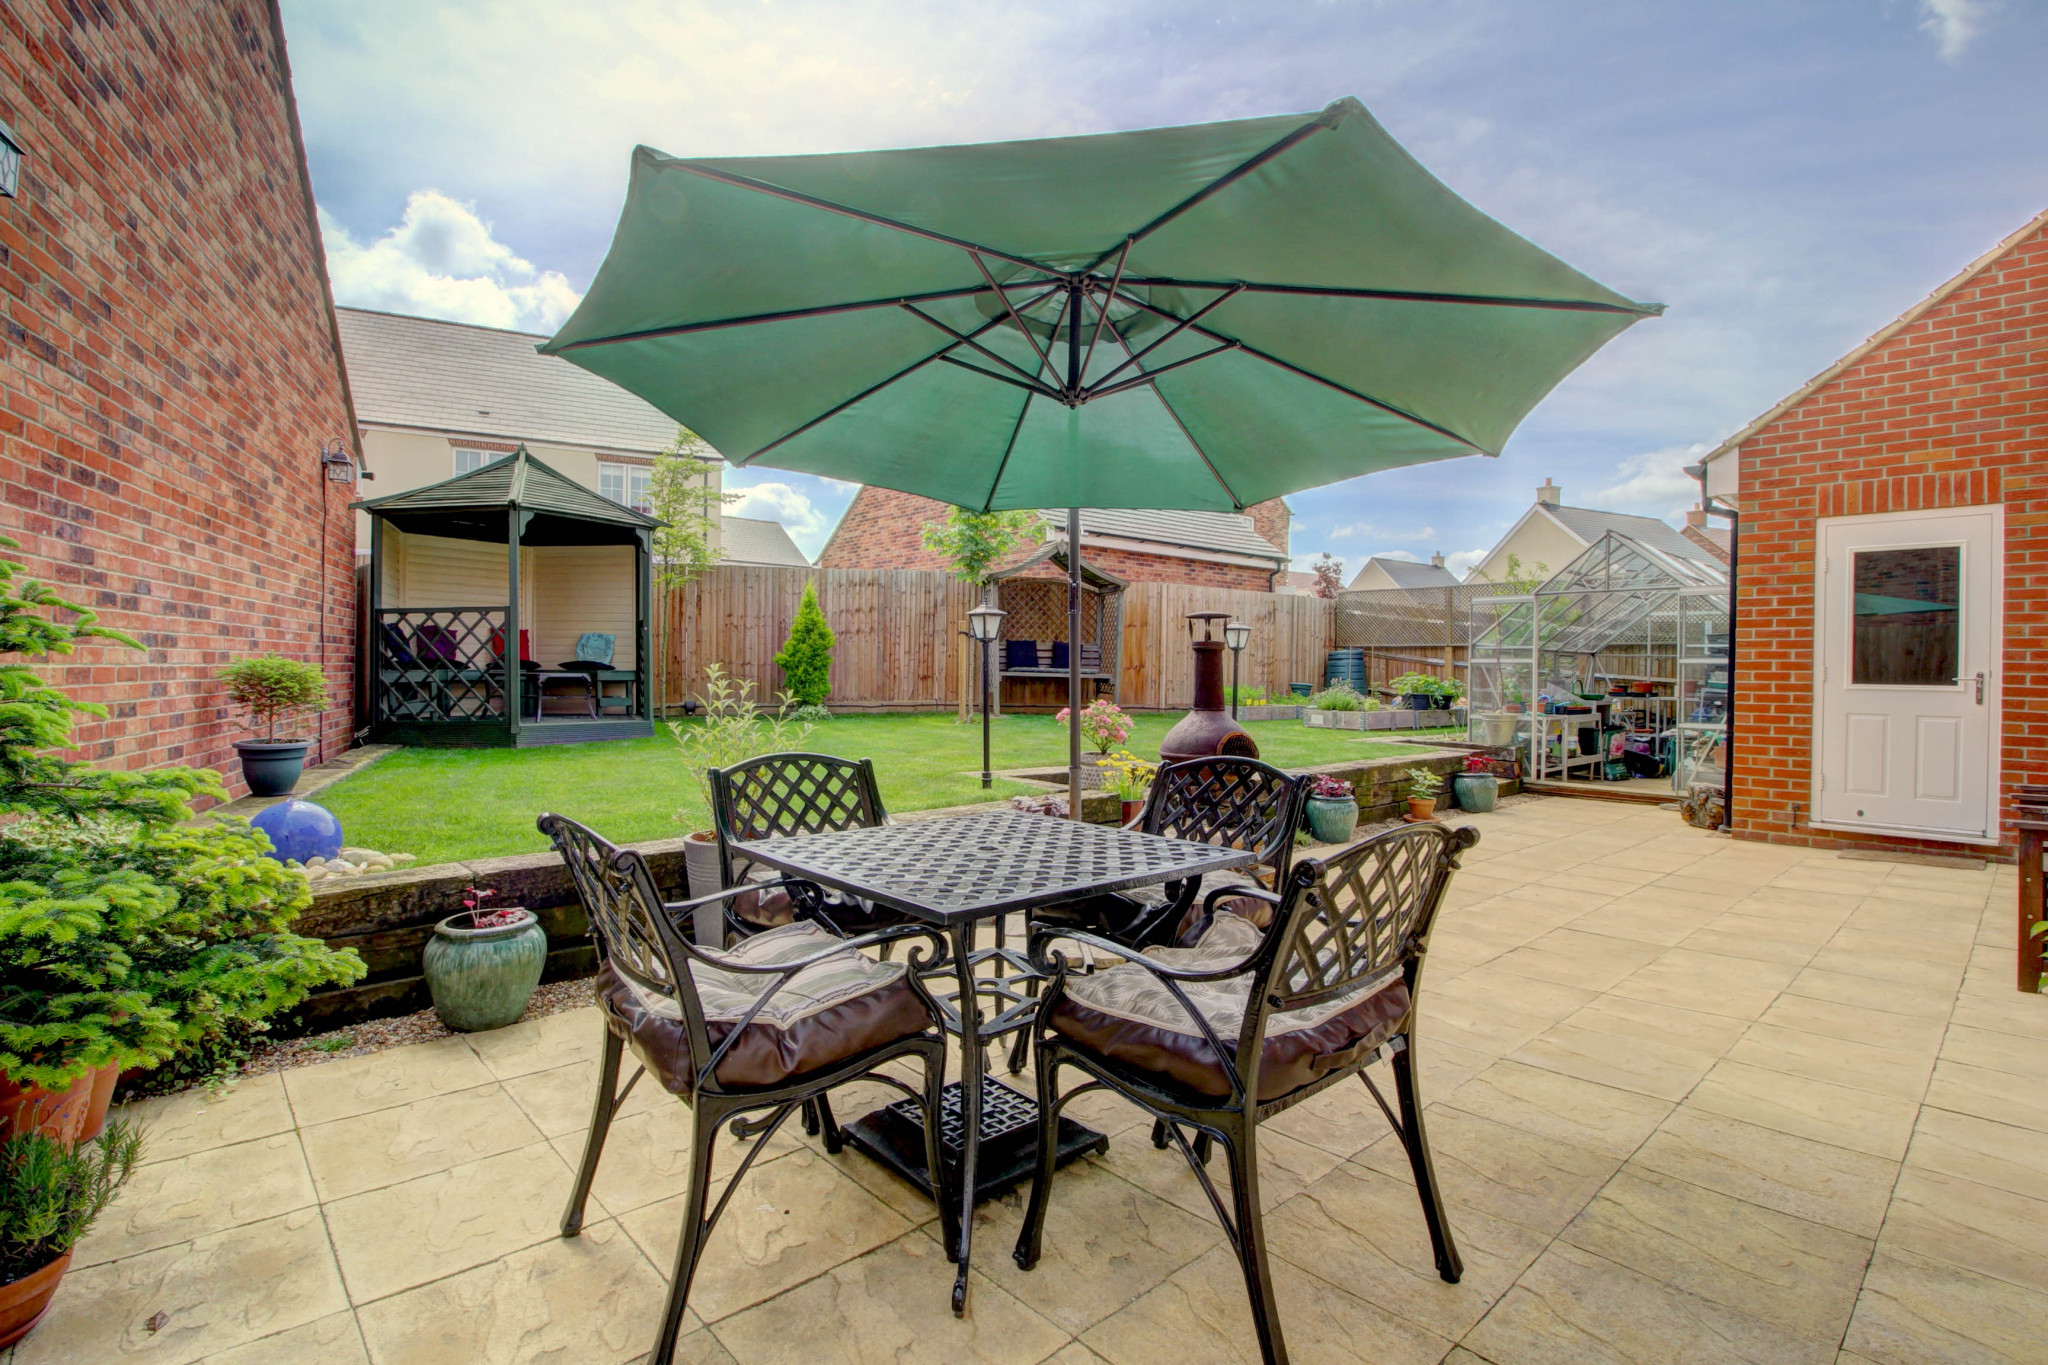 Famous Property For Sale On Eight Acres, Cranfield, Bedford Intended For Flitwick Market Umbrellas (View 16 of 20)